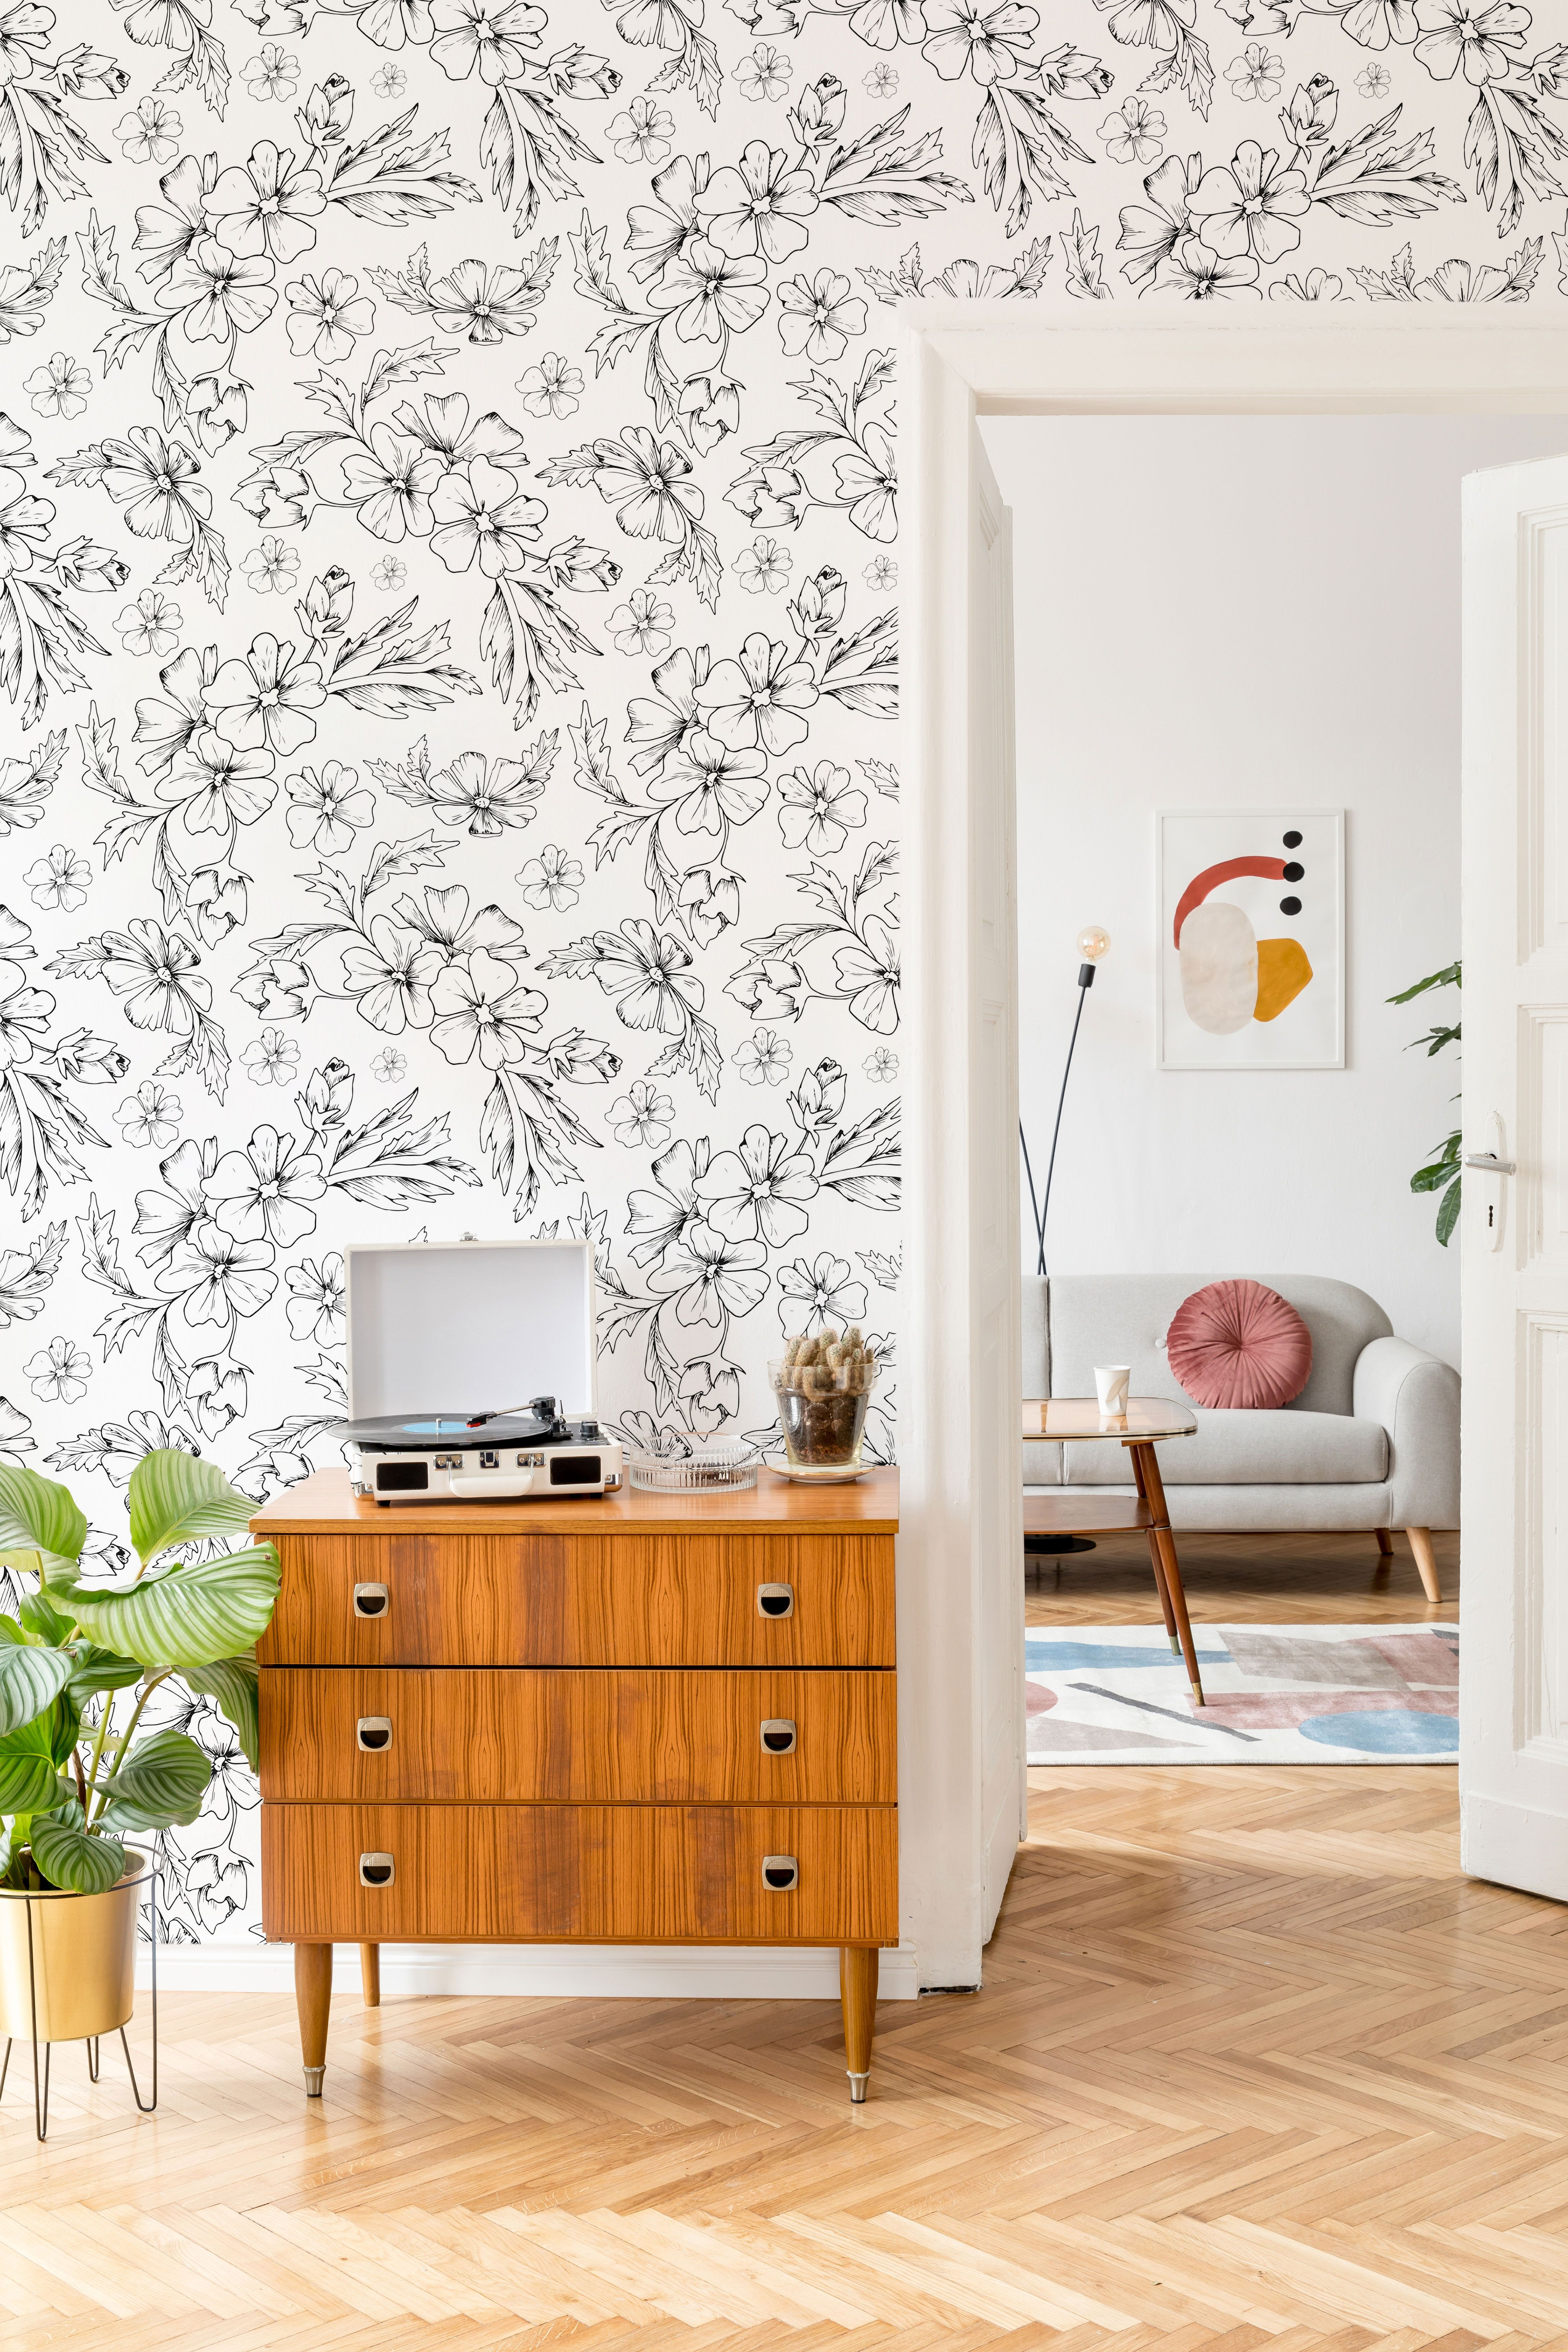 Pin On Home Decor Floral Removable Wallpaper Products